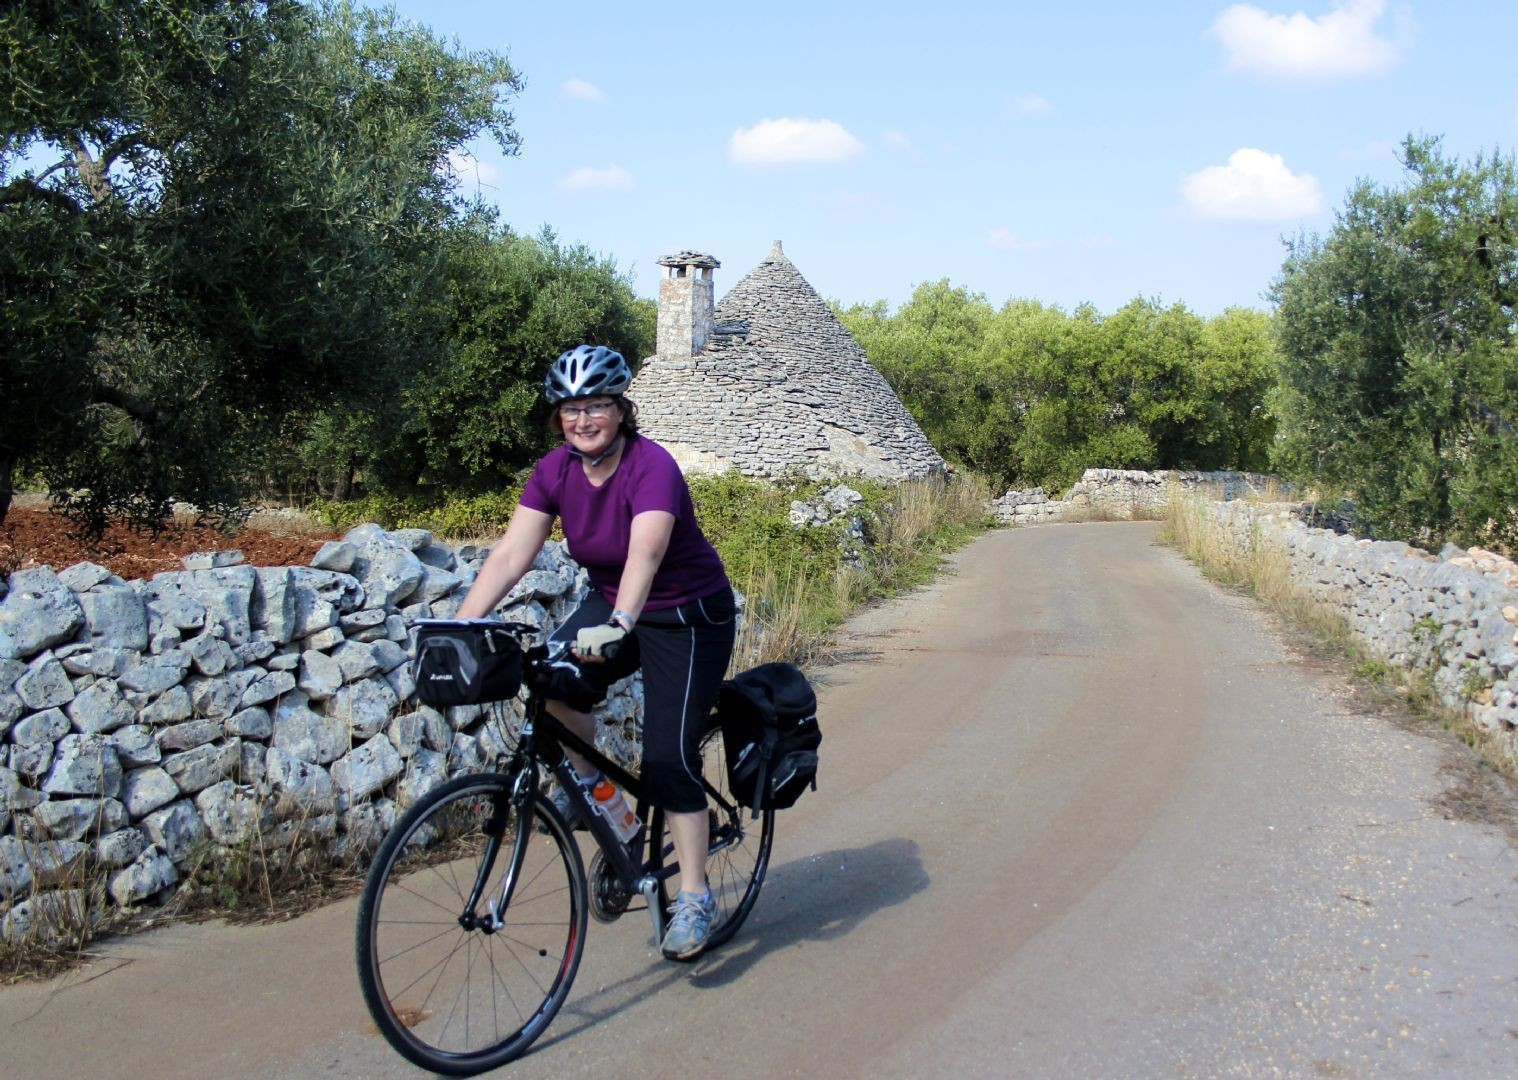 cycling-holiday-puglia-italy-landscape-culture.jpg - Italy - Puglia - Guided Leisure Cycling Holiday - Italia Leisure and Family Cycling